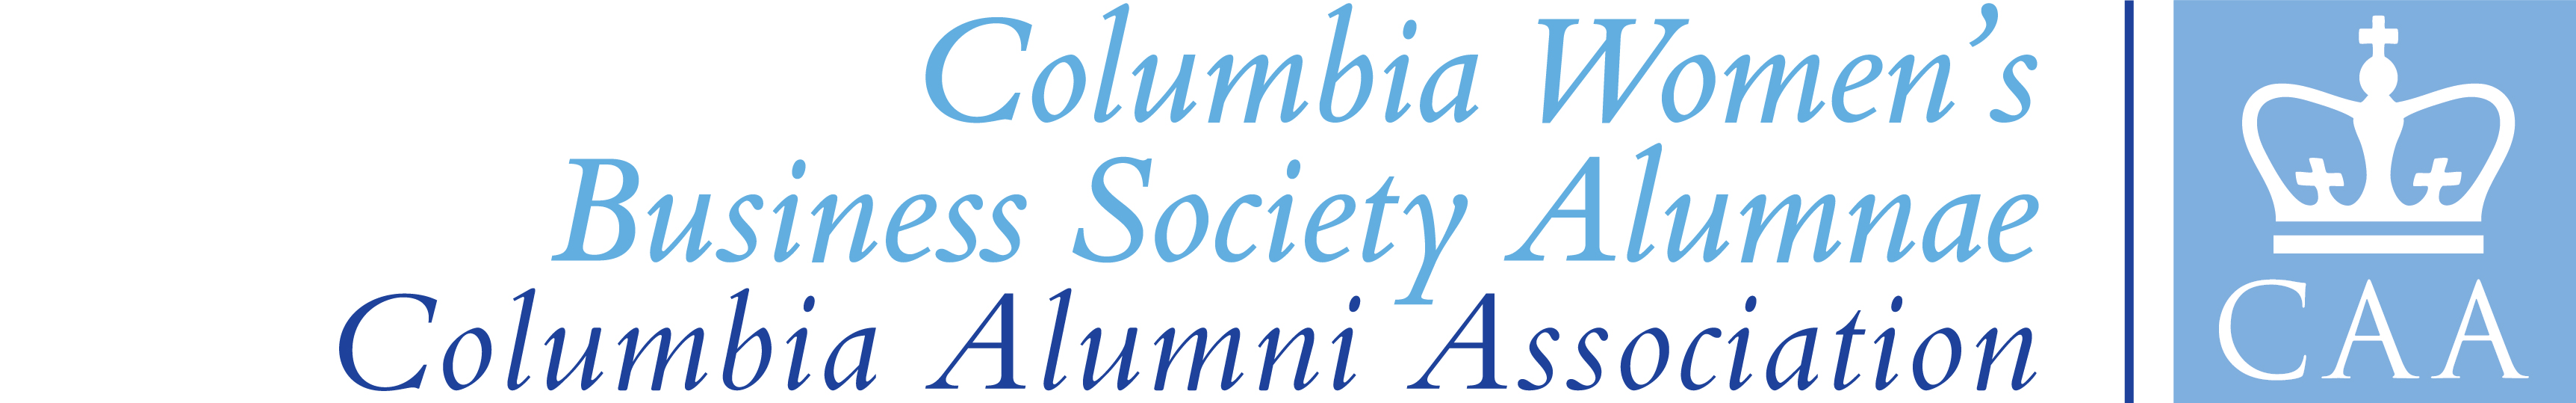 Columbia Women's Business Society Alumnae